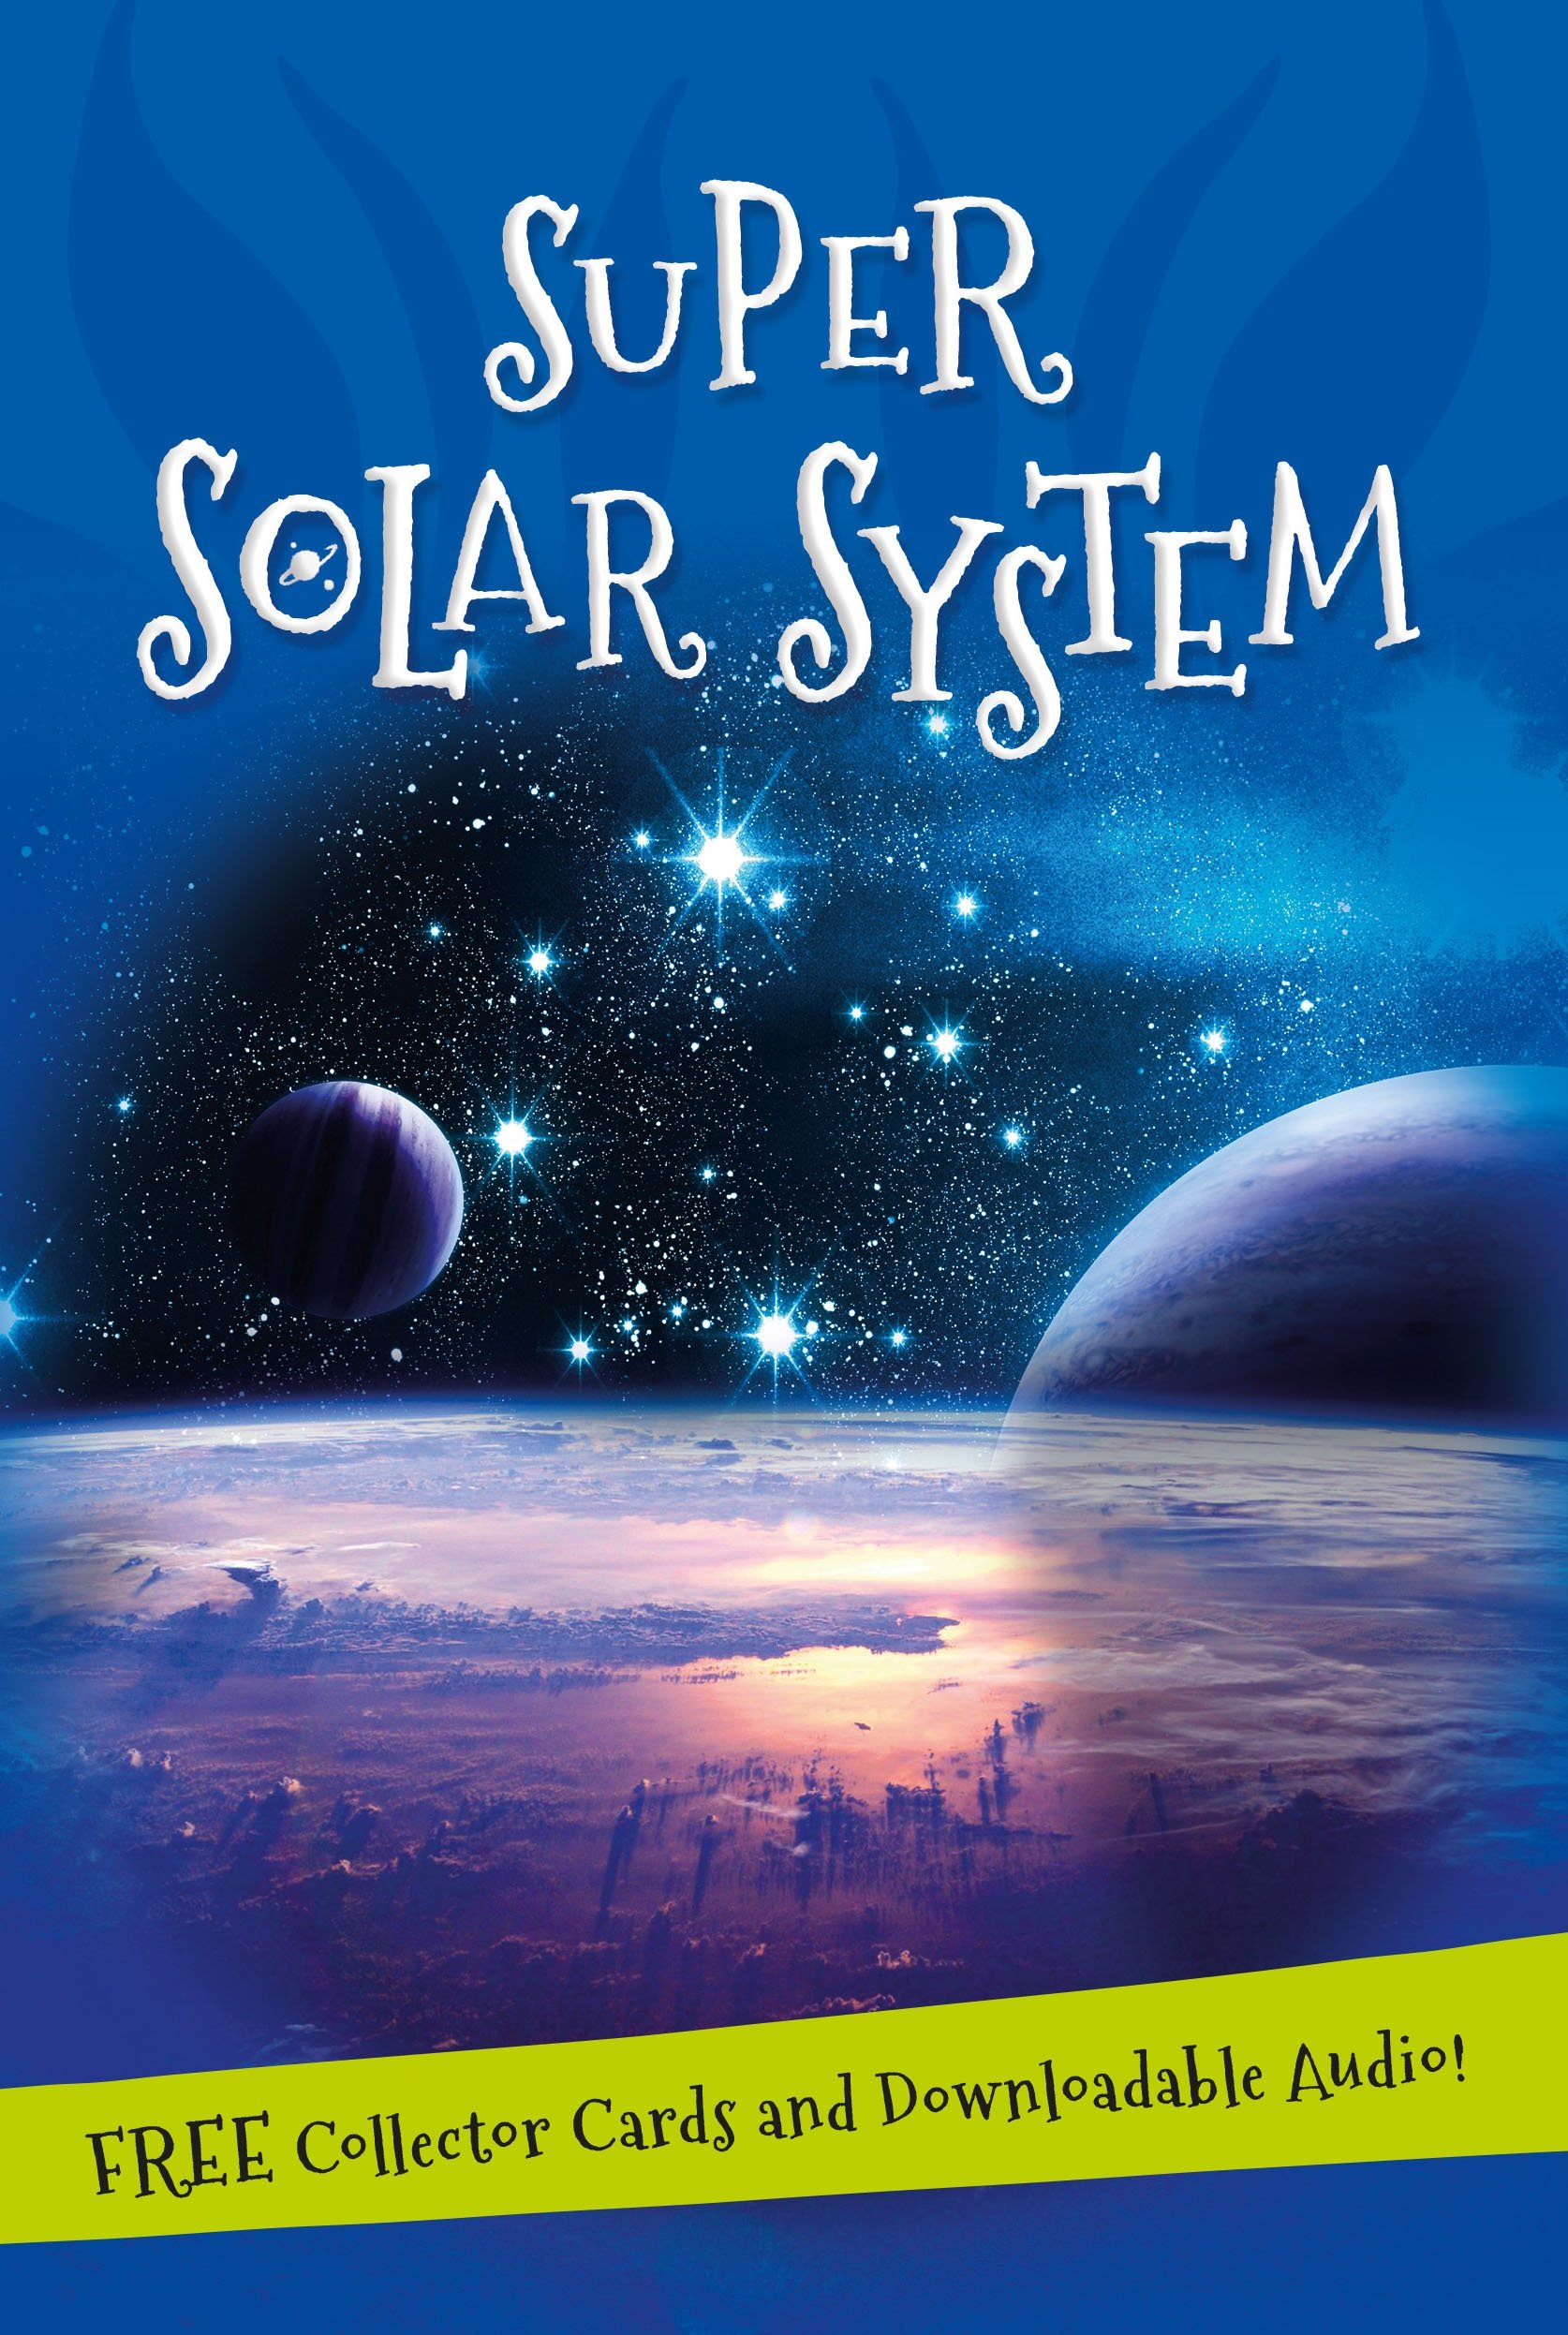 It's all about... Super Solar System about you кардиган